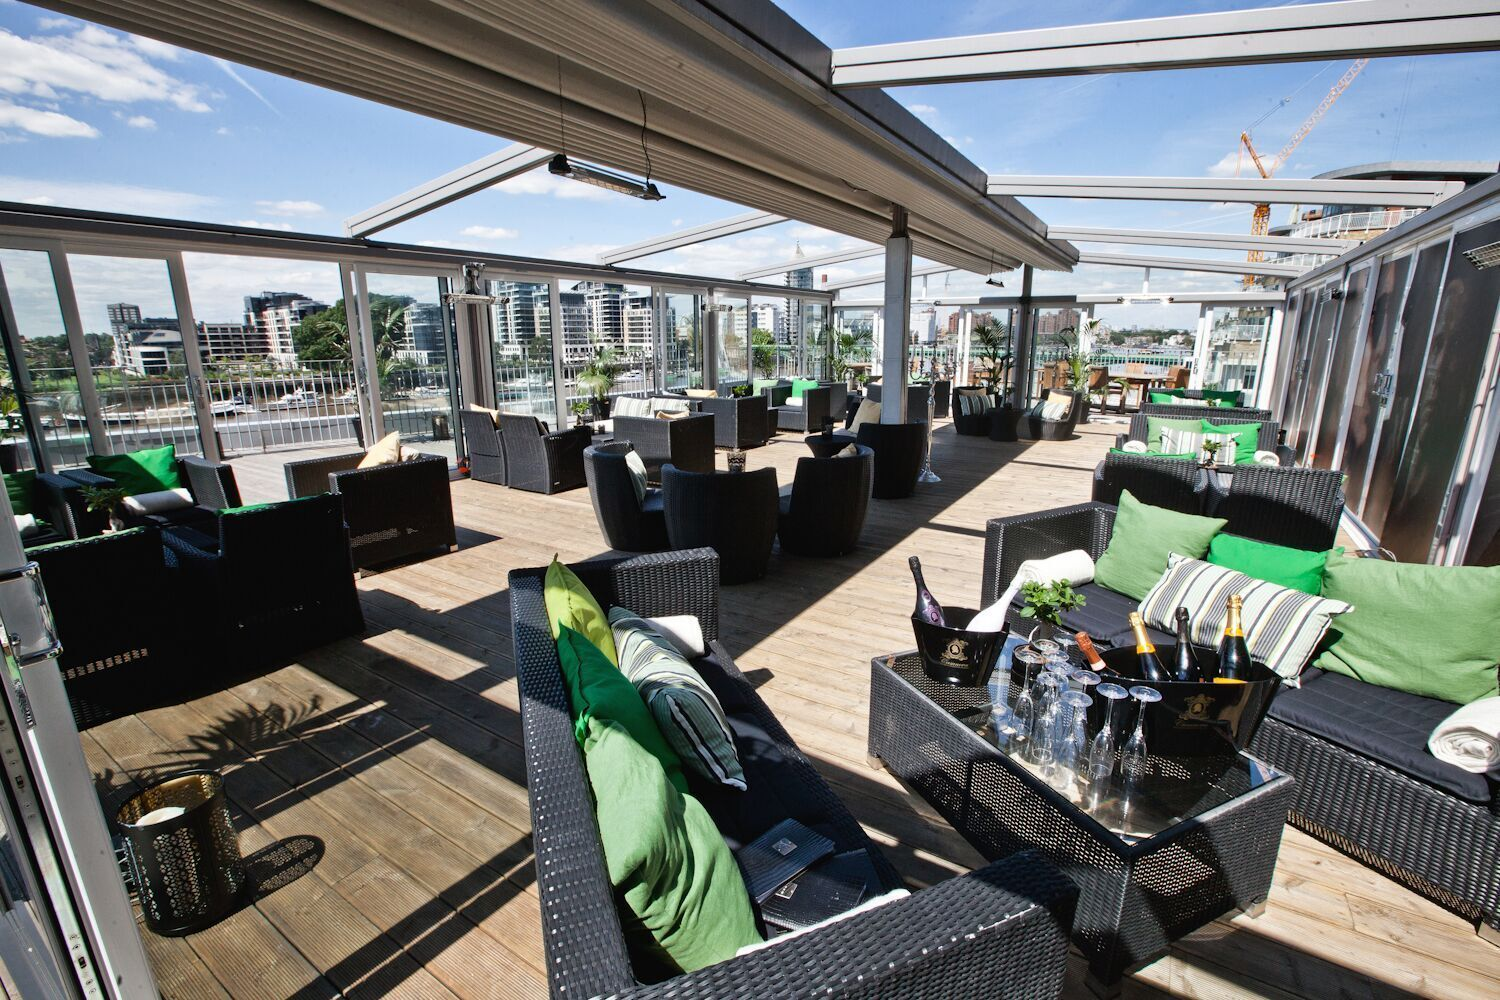 Views At The Anese Garden Rafayel Hotel Battersea Clapham Junction Rooftop